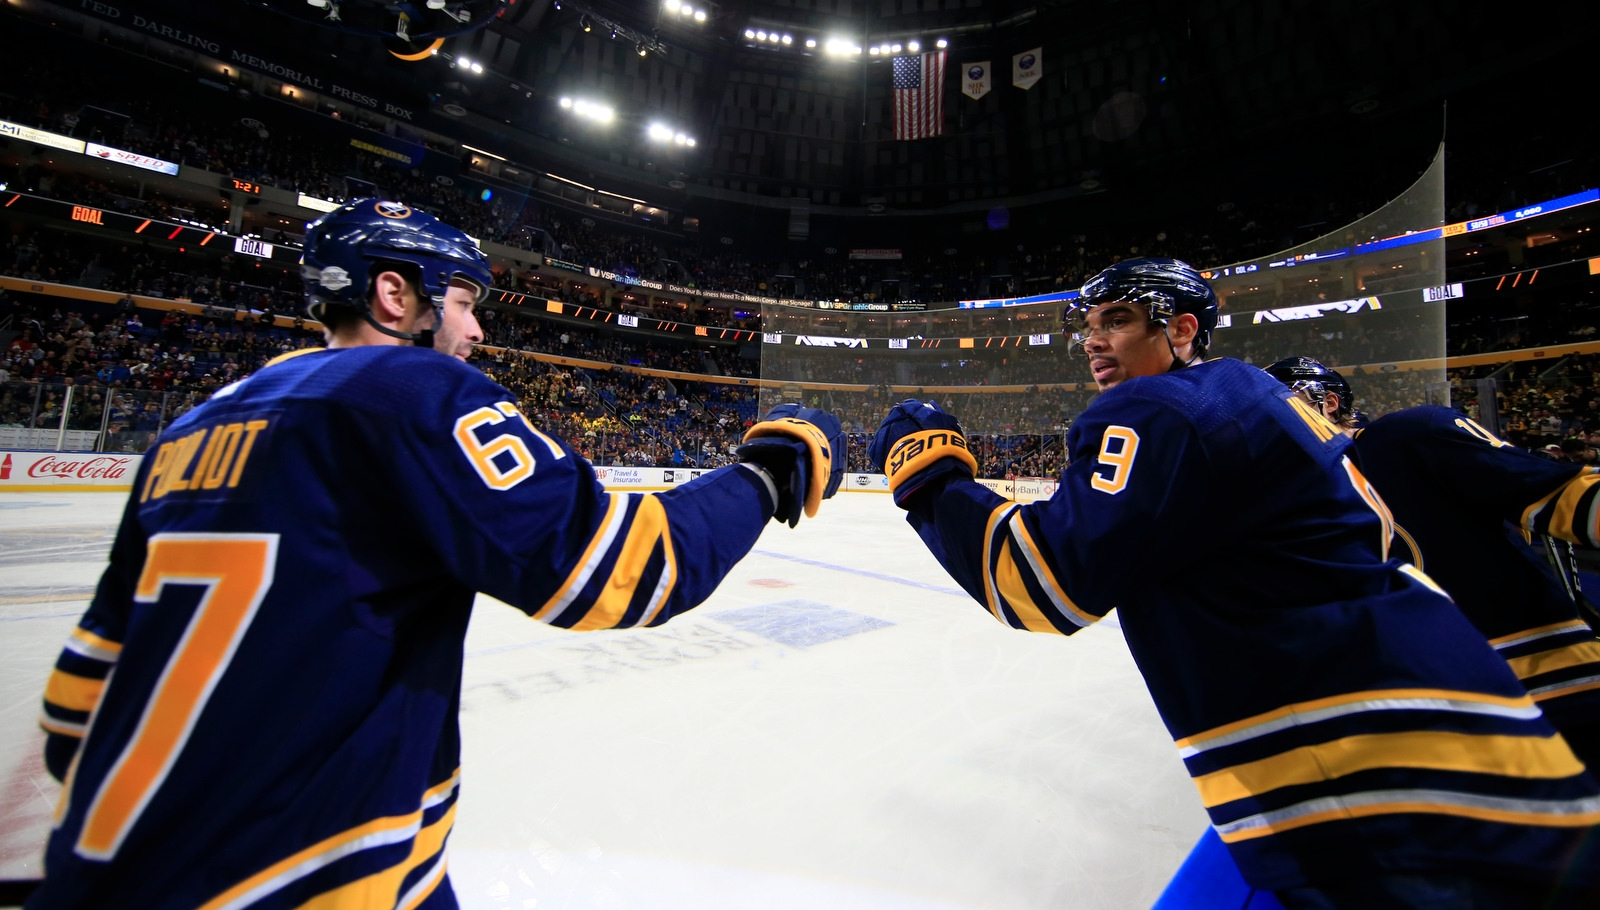 Buffalo Sabres' Evander Kane congratulates Benoit Pouliot on his shorthanded goal against the Colorado Avalanche during first period action at KeyBank Center on Sunday, Feb. 11, 2018.